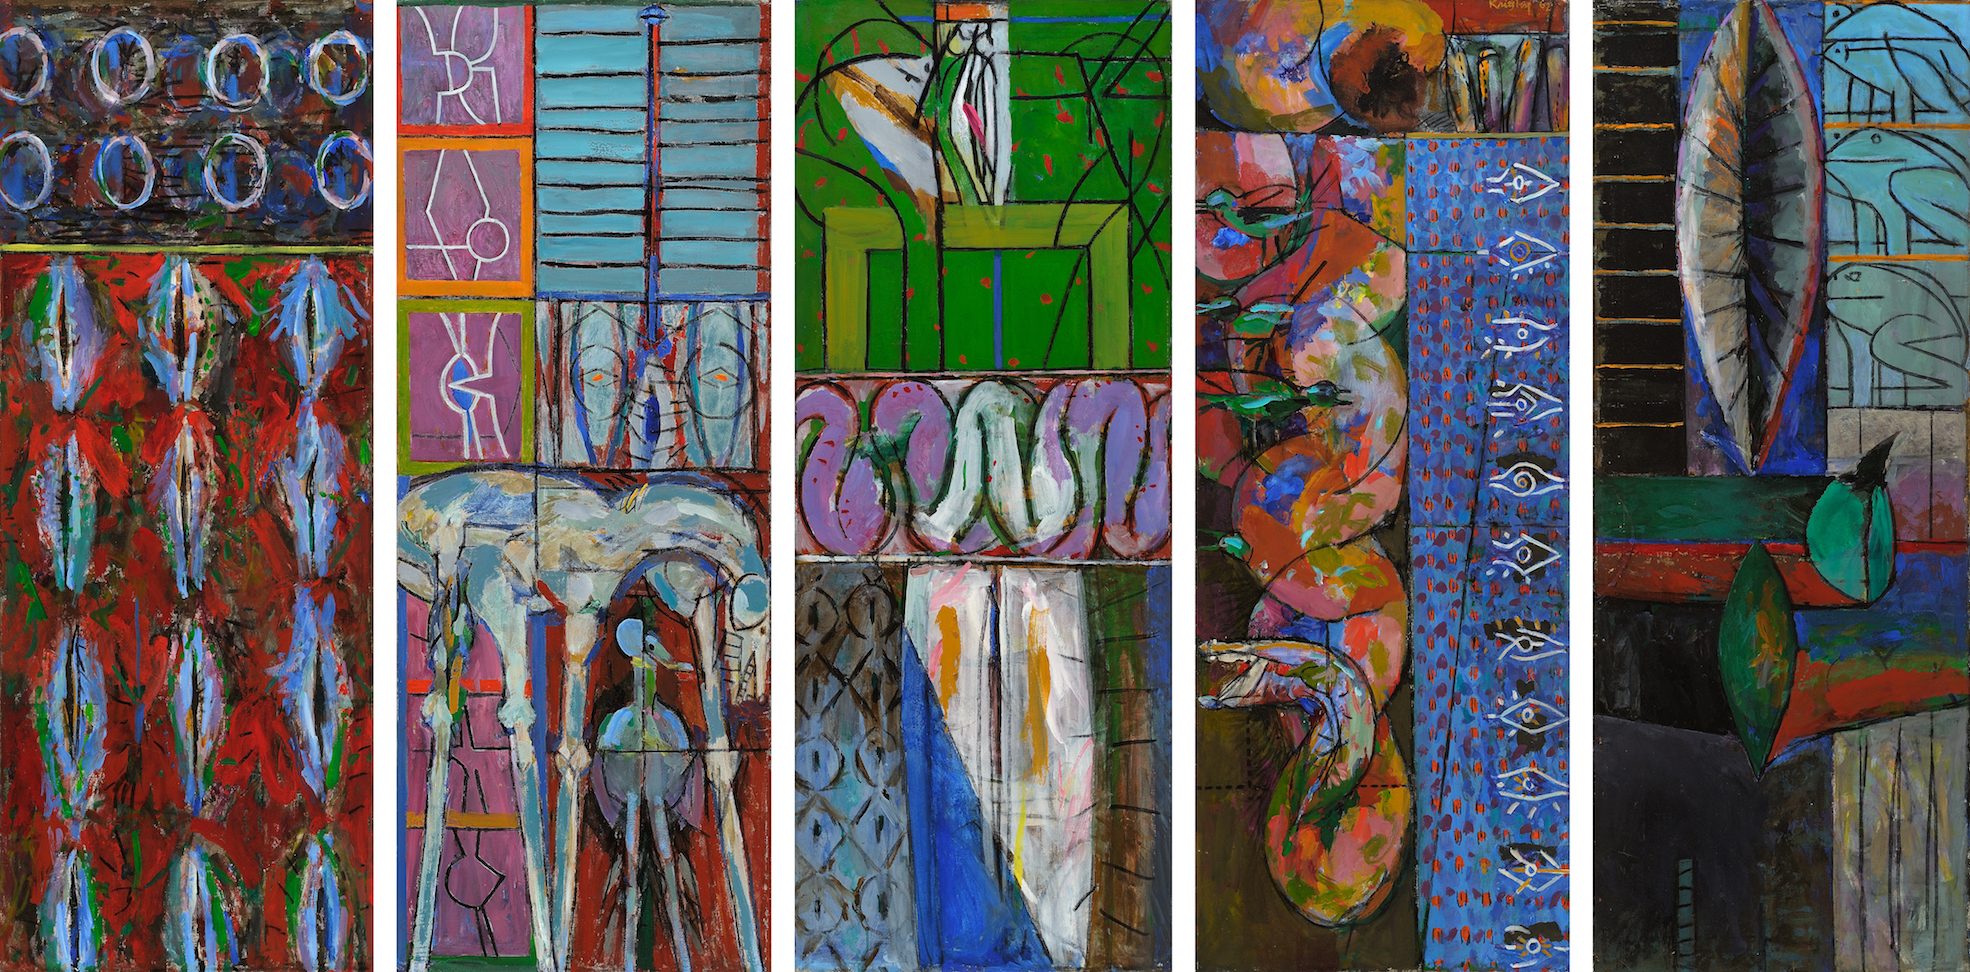 Beginnings , 1962, Oil on canvas (five panels), overall: 56 1/2 x 110 3/4 in. (143.5 x 281.3 cm)